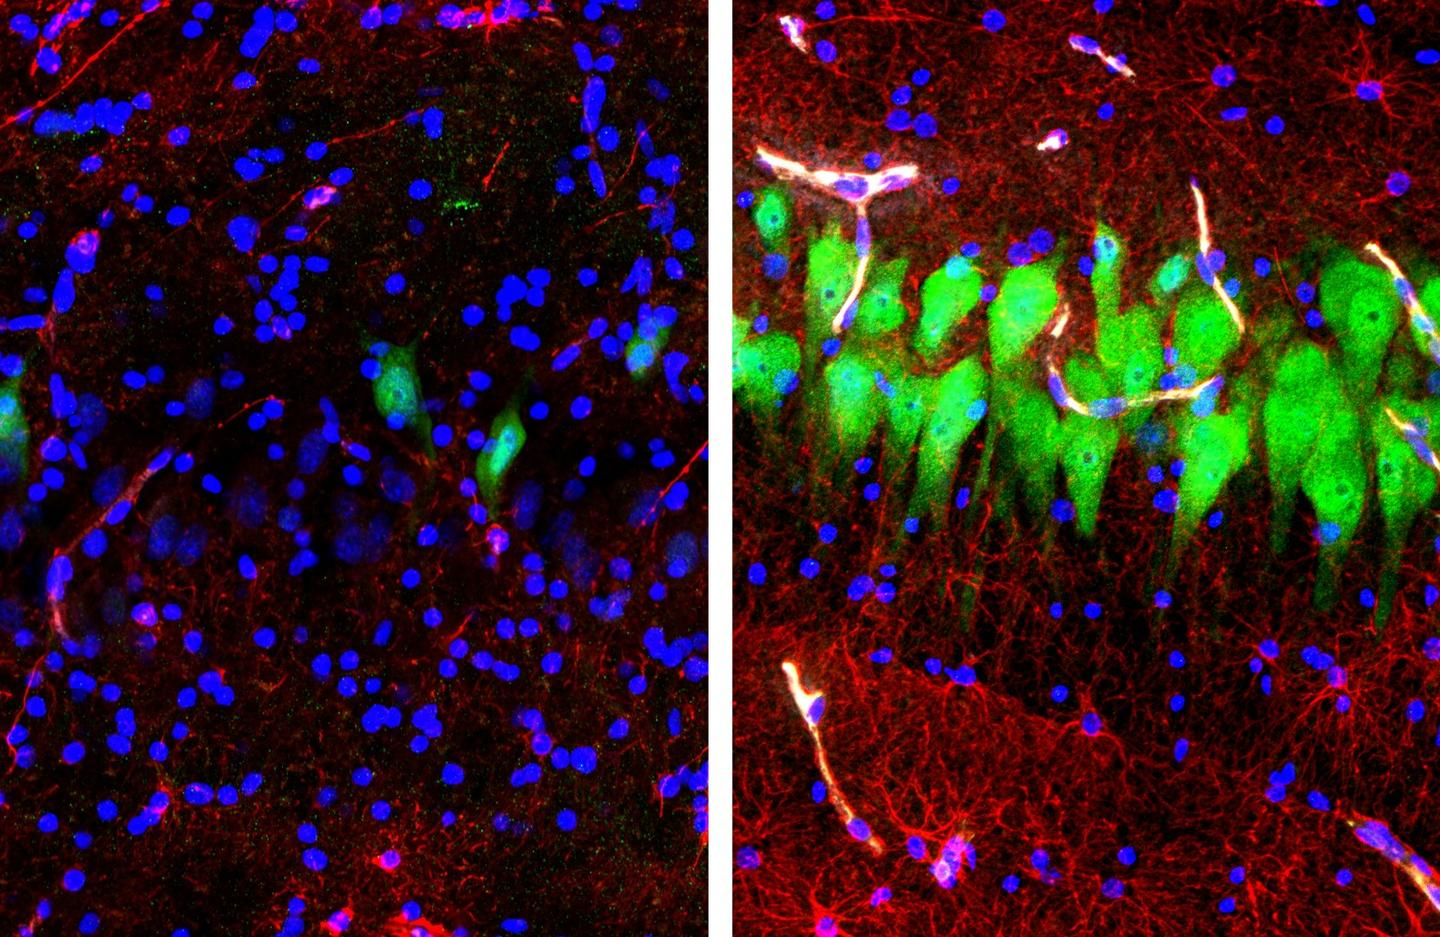 Neurons (green), astrocytes (red), and cell nuclei (blue), as seen in the hippocampal region of the pig brain. The image on the left is a control brain, which was left untreated for 10 hours after death. The image on the right is from a brain treated with the BrainEx system, reducing cell death and even restoring some brain functions for 10 hours after death